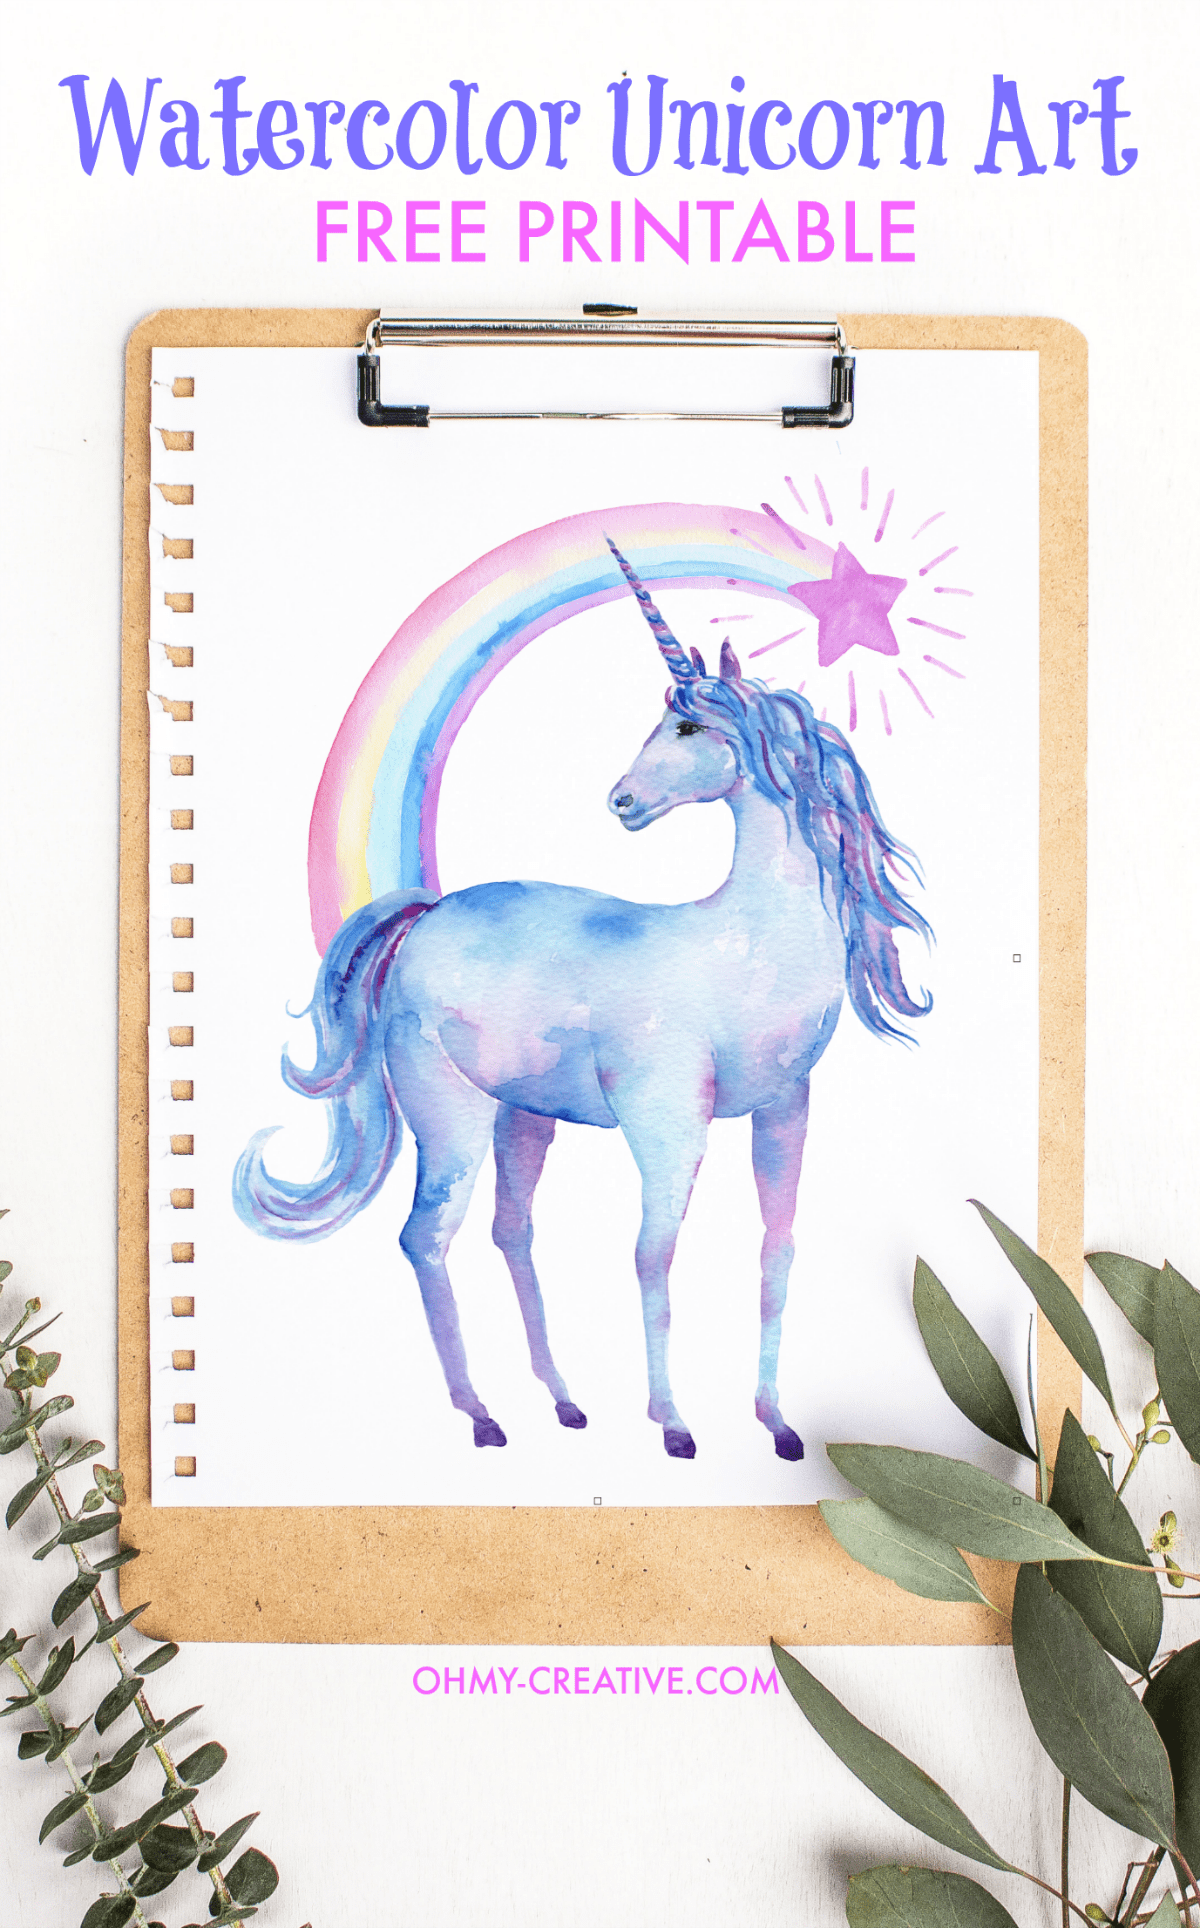 picture regarding Free Printable Unicorn called Totally free Printable Watercolor Unicorn Visuals - Oh My Innovative